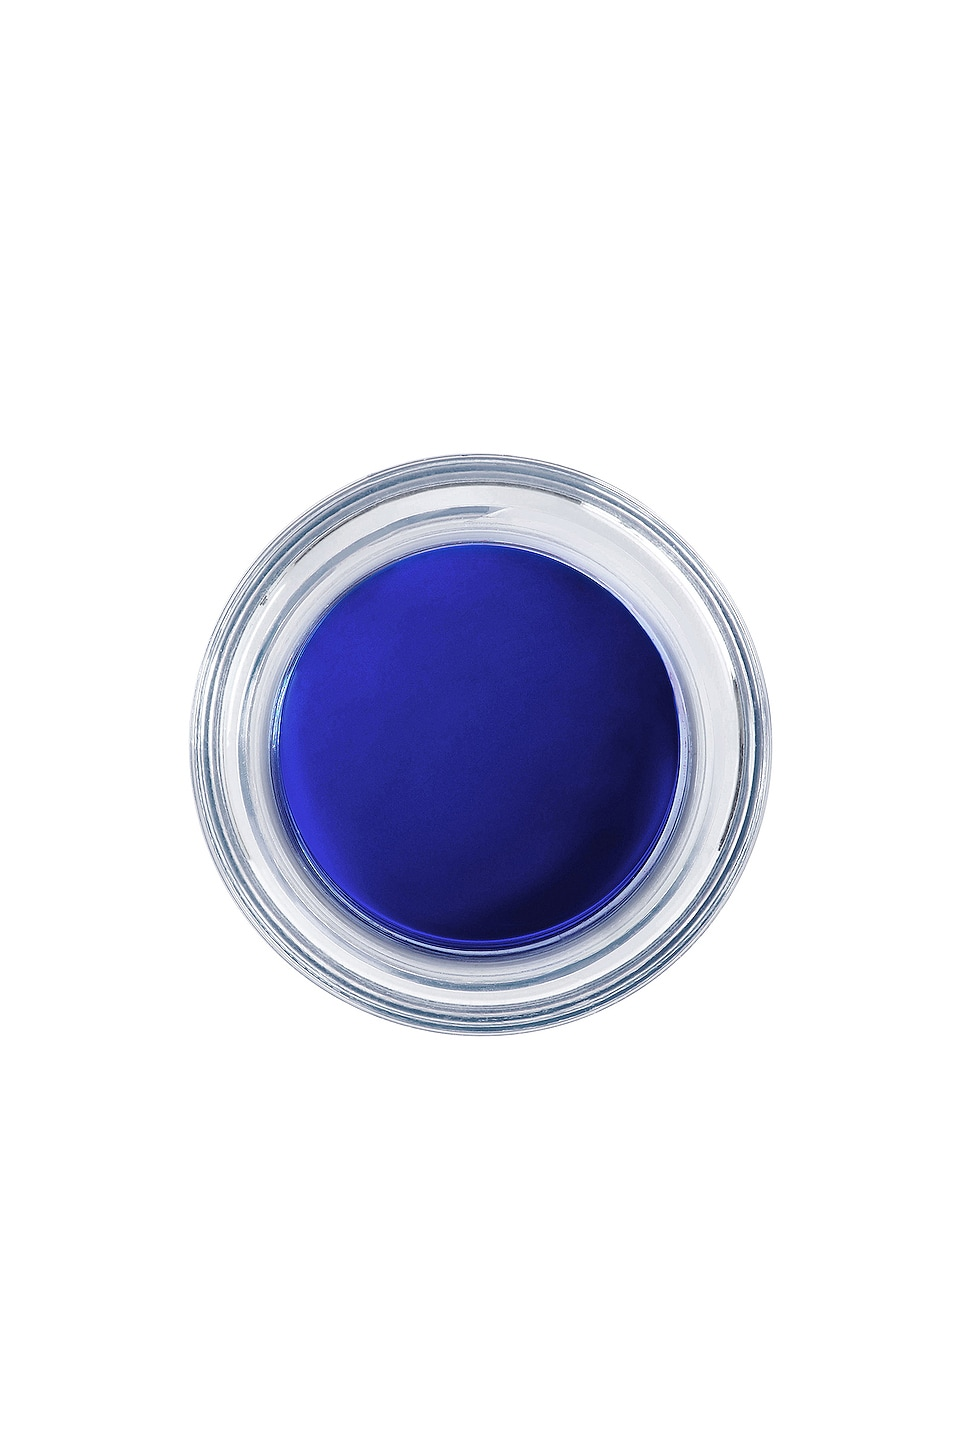 INC.redible Lid Slick Eye Pigment in Dose Of Ego